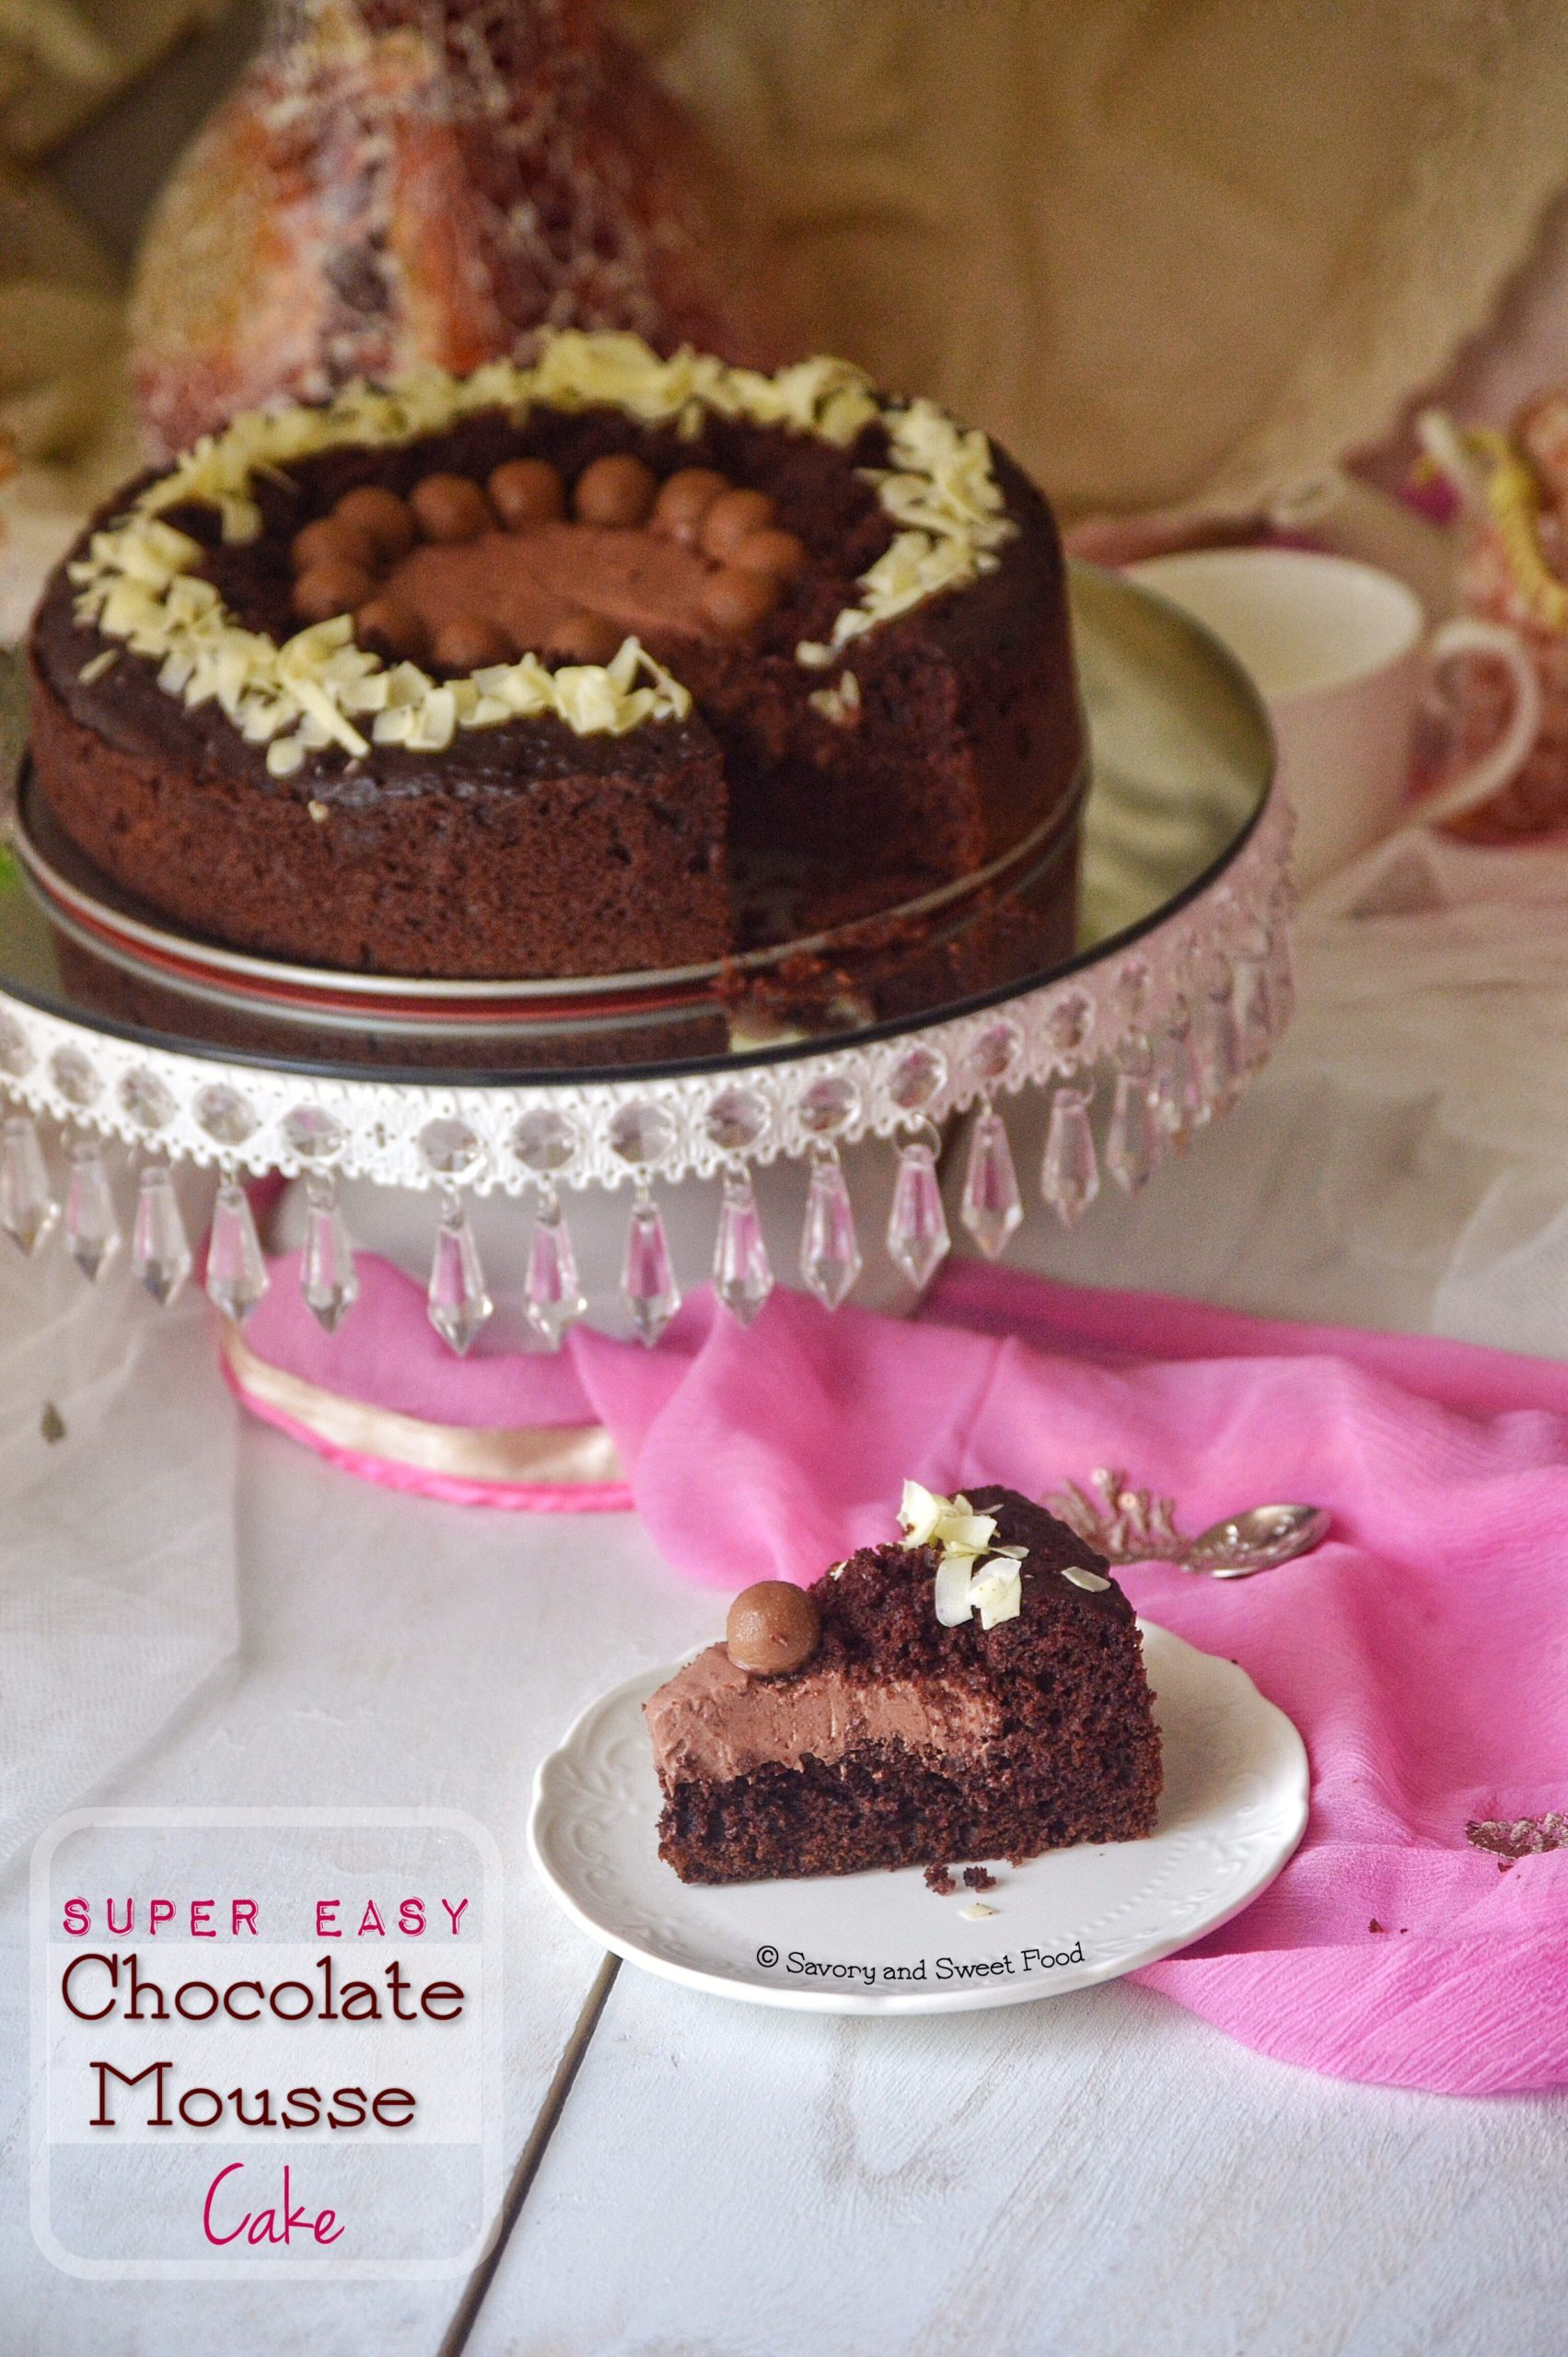 Super Easy Chocolate Mousse Cake